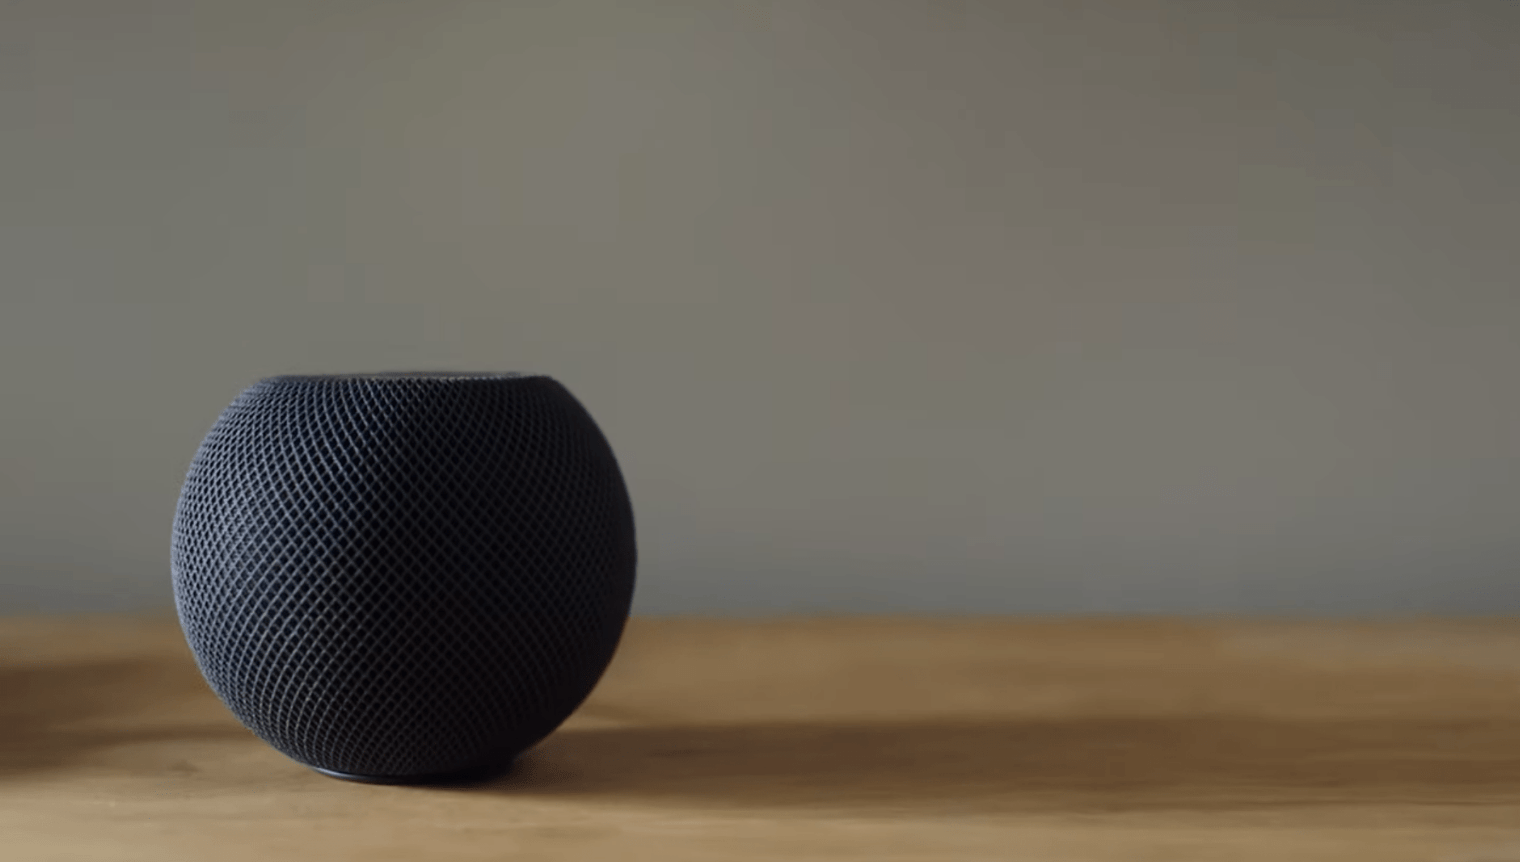 Колонка HomePod mini картинка